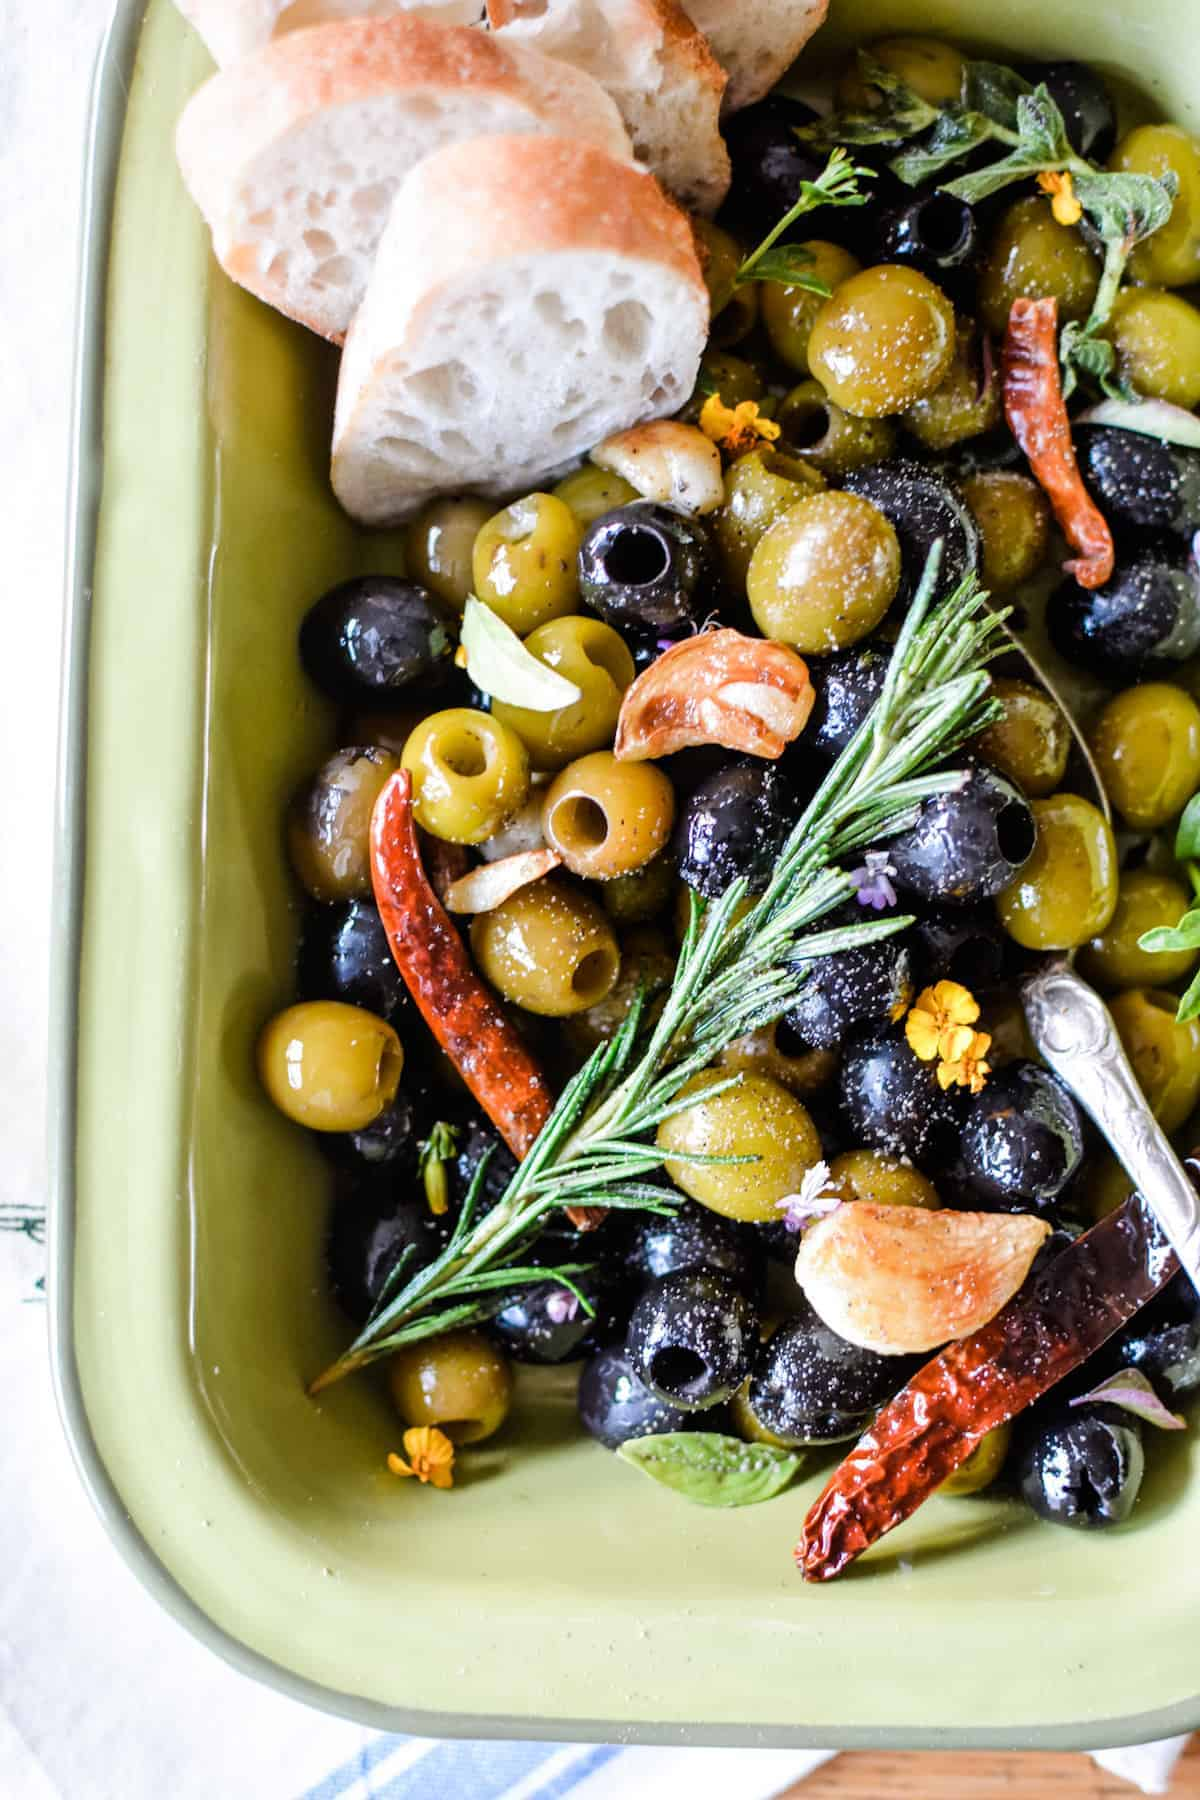 A green dish with black and green olives in it and a sprig of rosemary on the top with roasted garlic and dried arbol chiles.